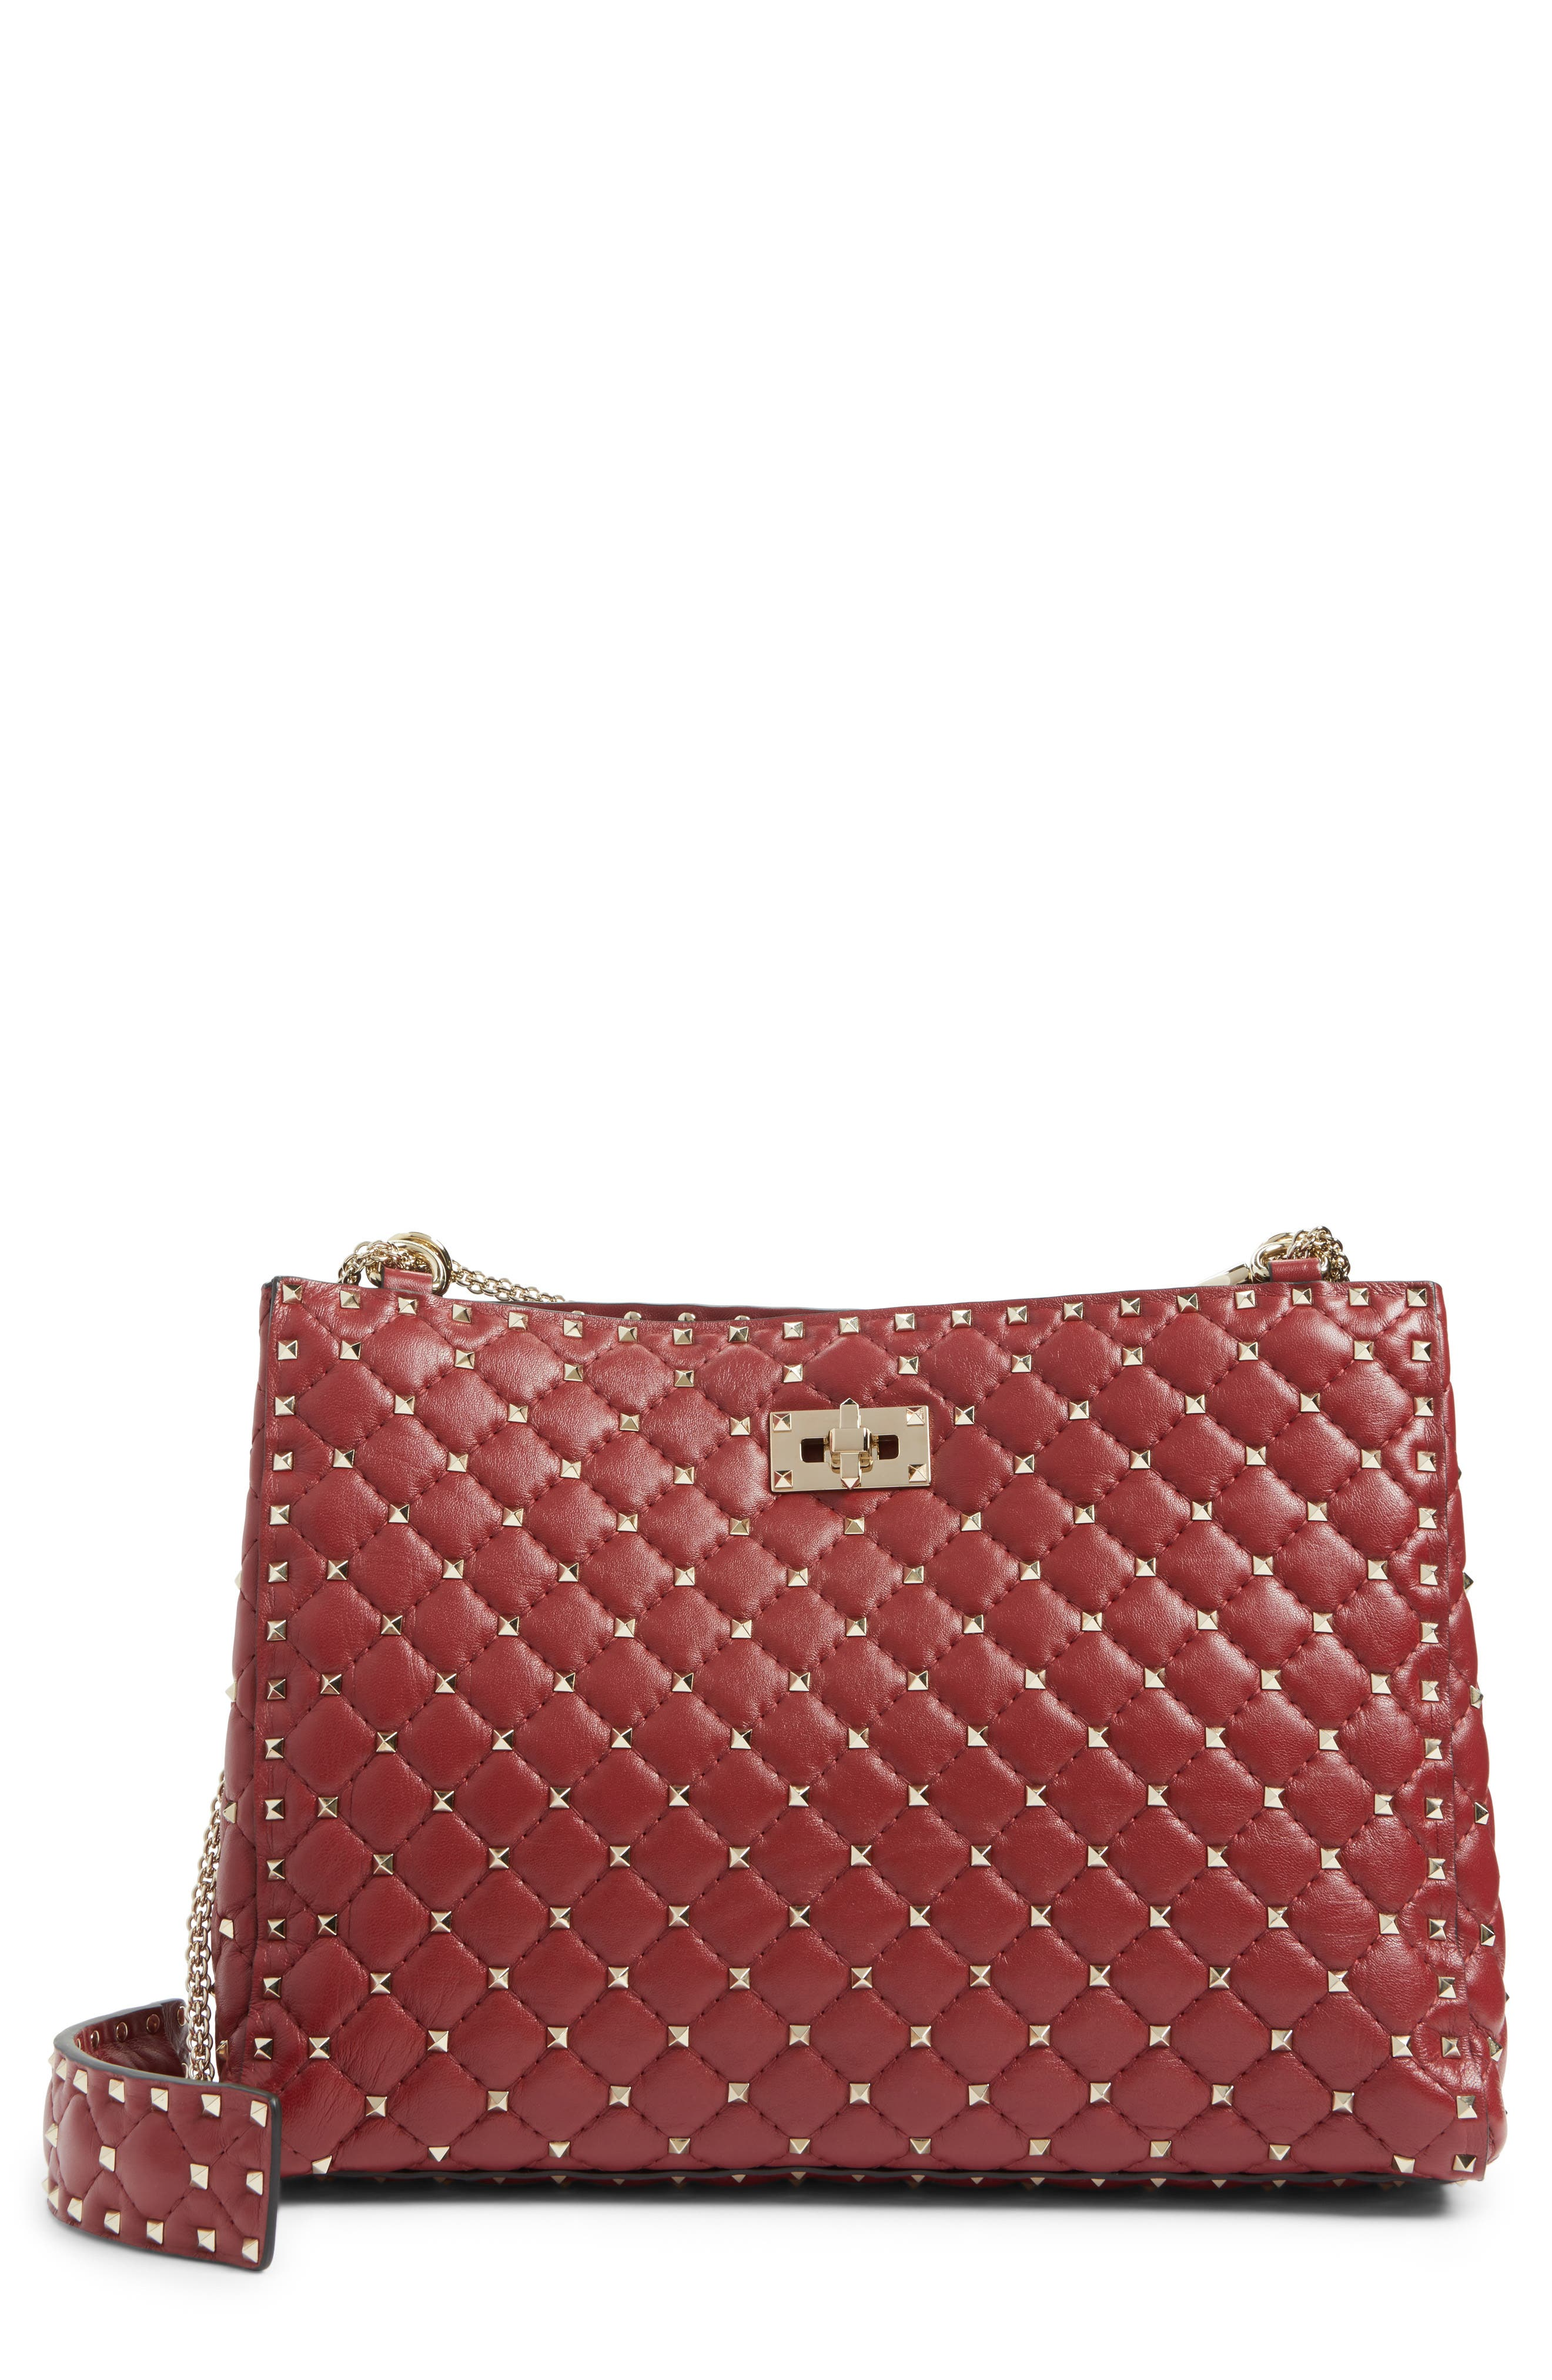 Alternate Image 1 Selected - VALENTINO GARAVANI Rockstud Spike Quilted Lambskin Leather Shoulder Bag